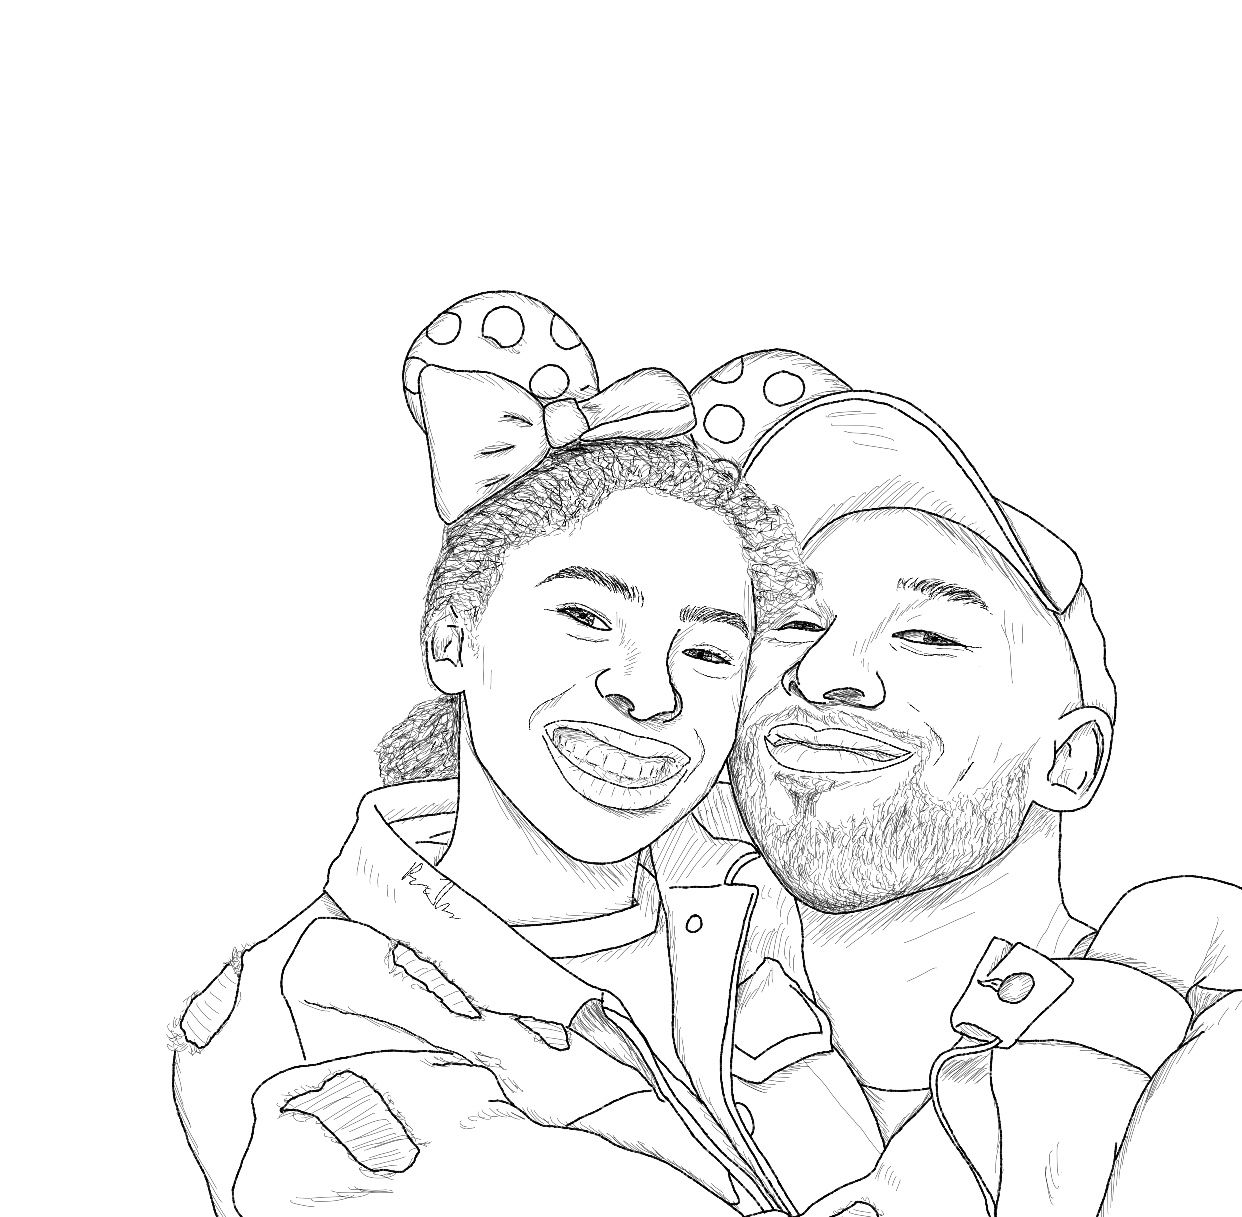 Reagan S Art On Instagram Rest In Peace Kobe And Gigi So Heartbreaking Basketball Drawings Coloring Pages Kobe